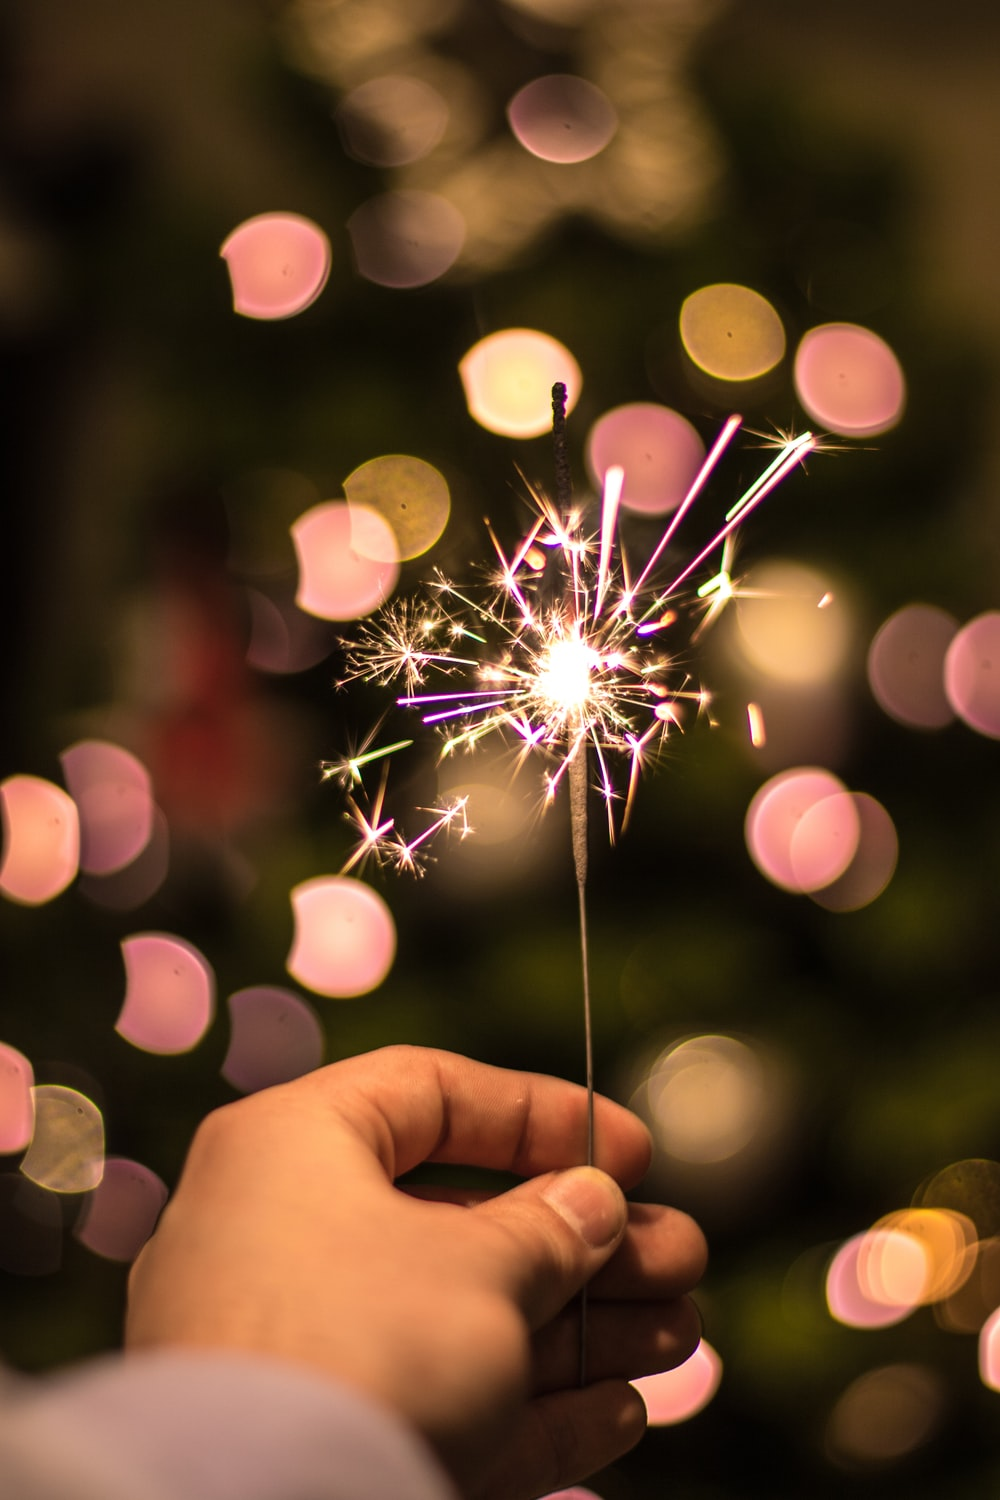 bokeh photography of person holding fireworks